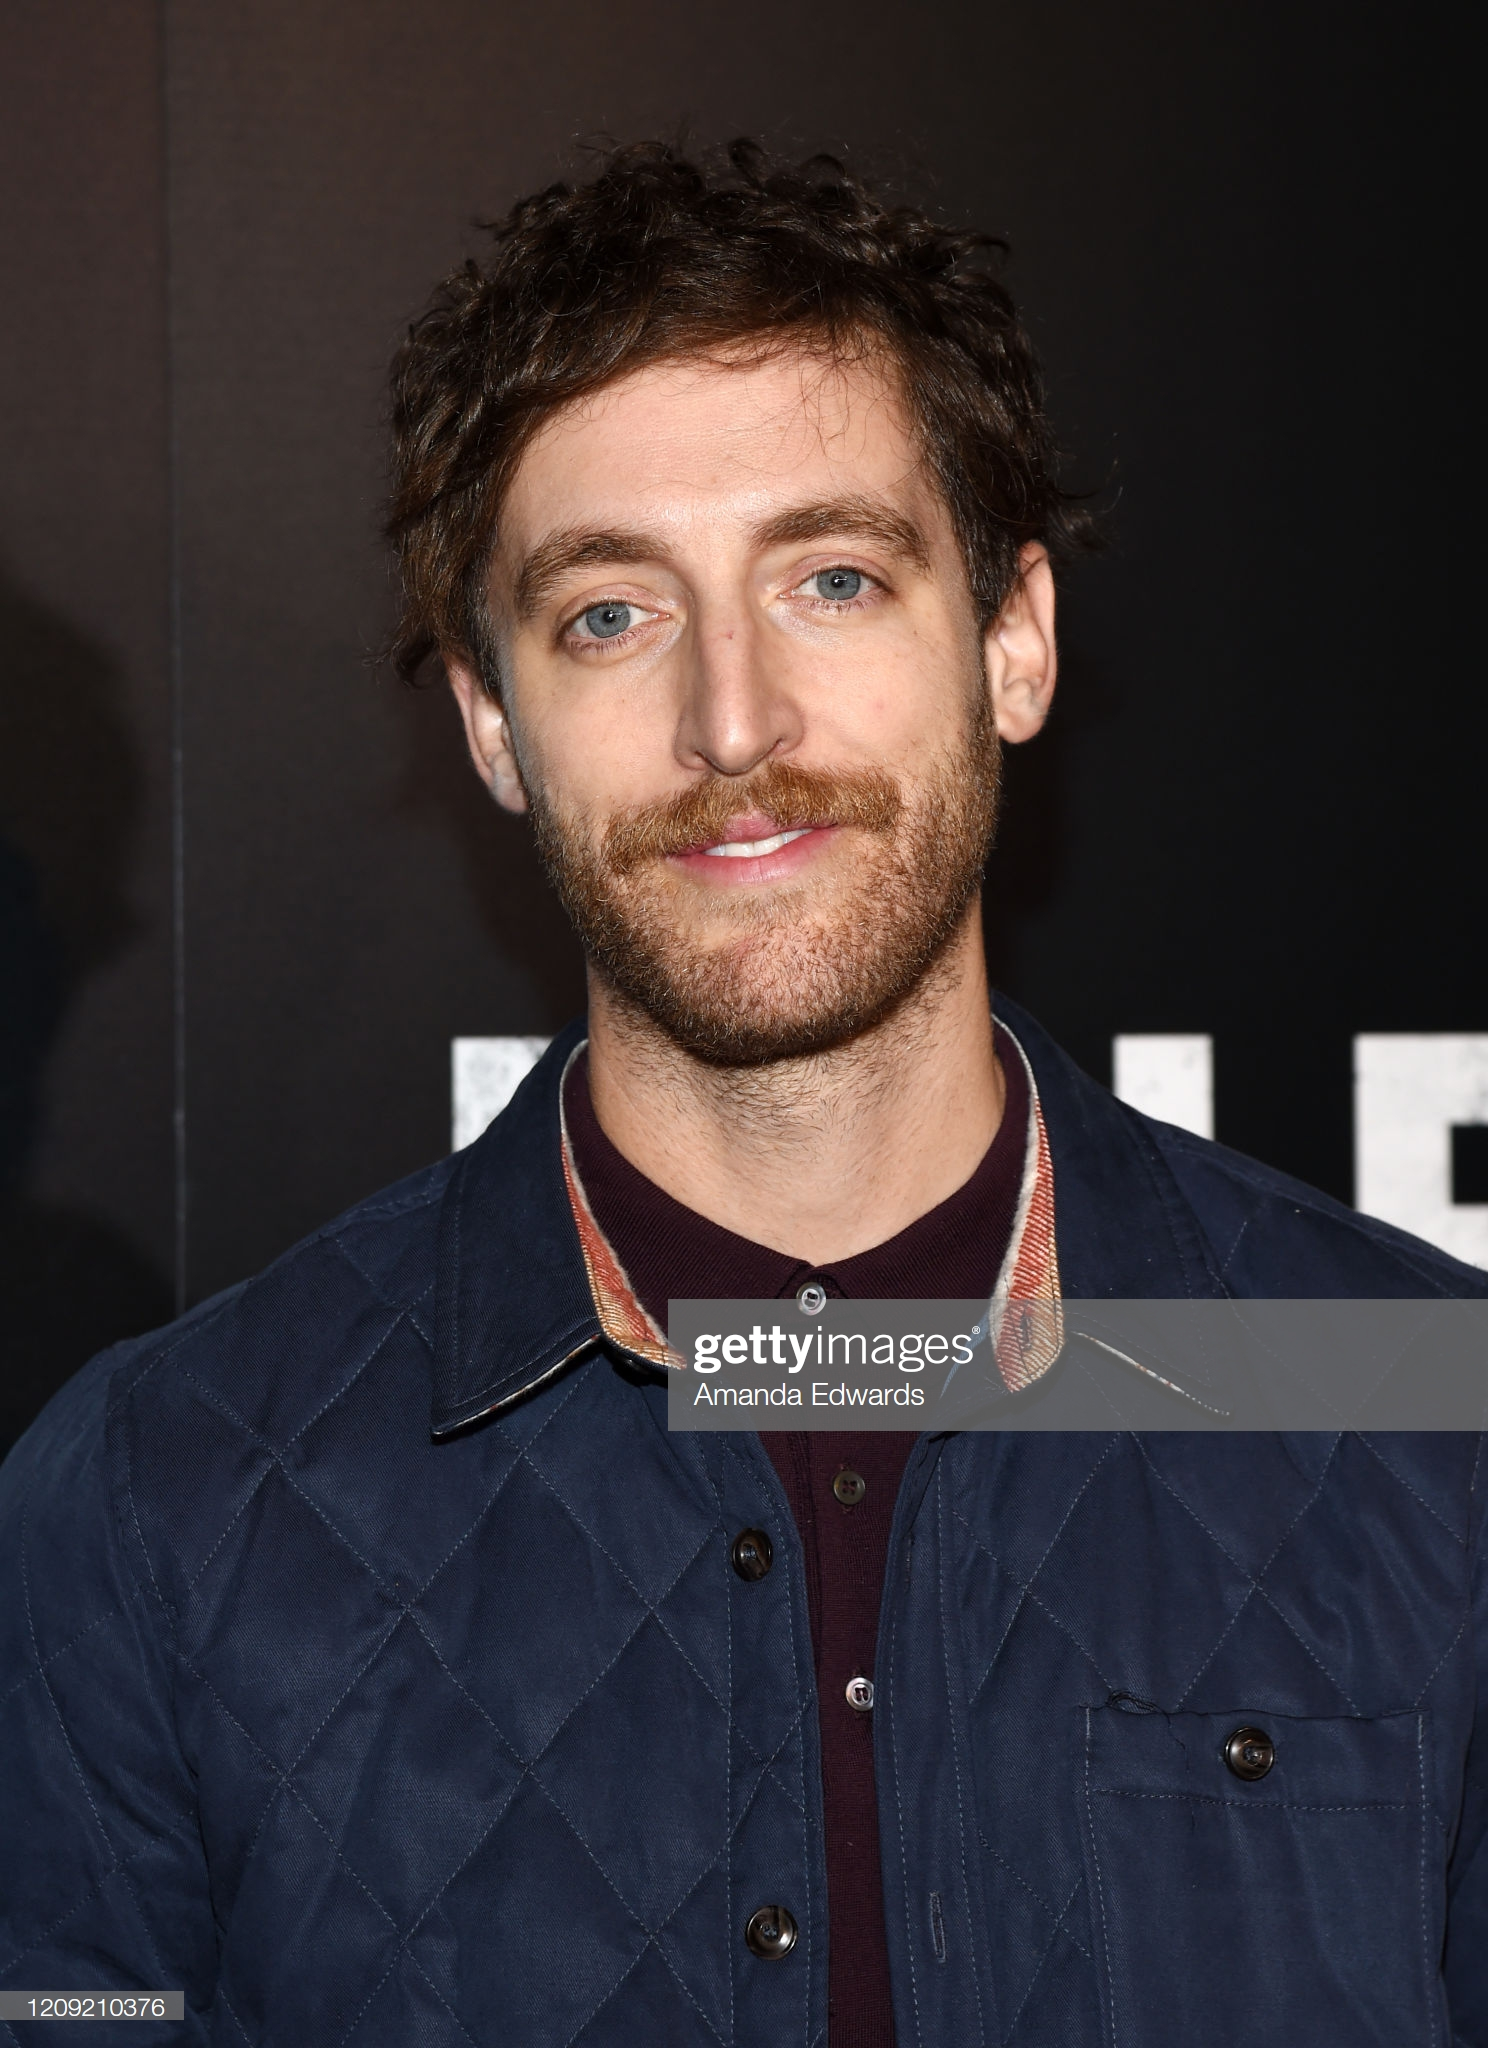 thomas middleditch 2-sao nam mac dep-elleman-0220